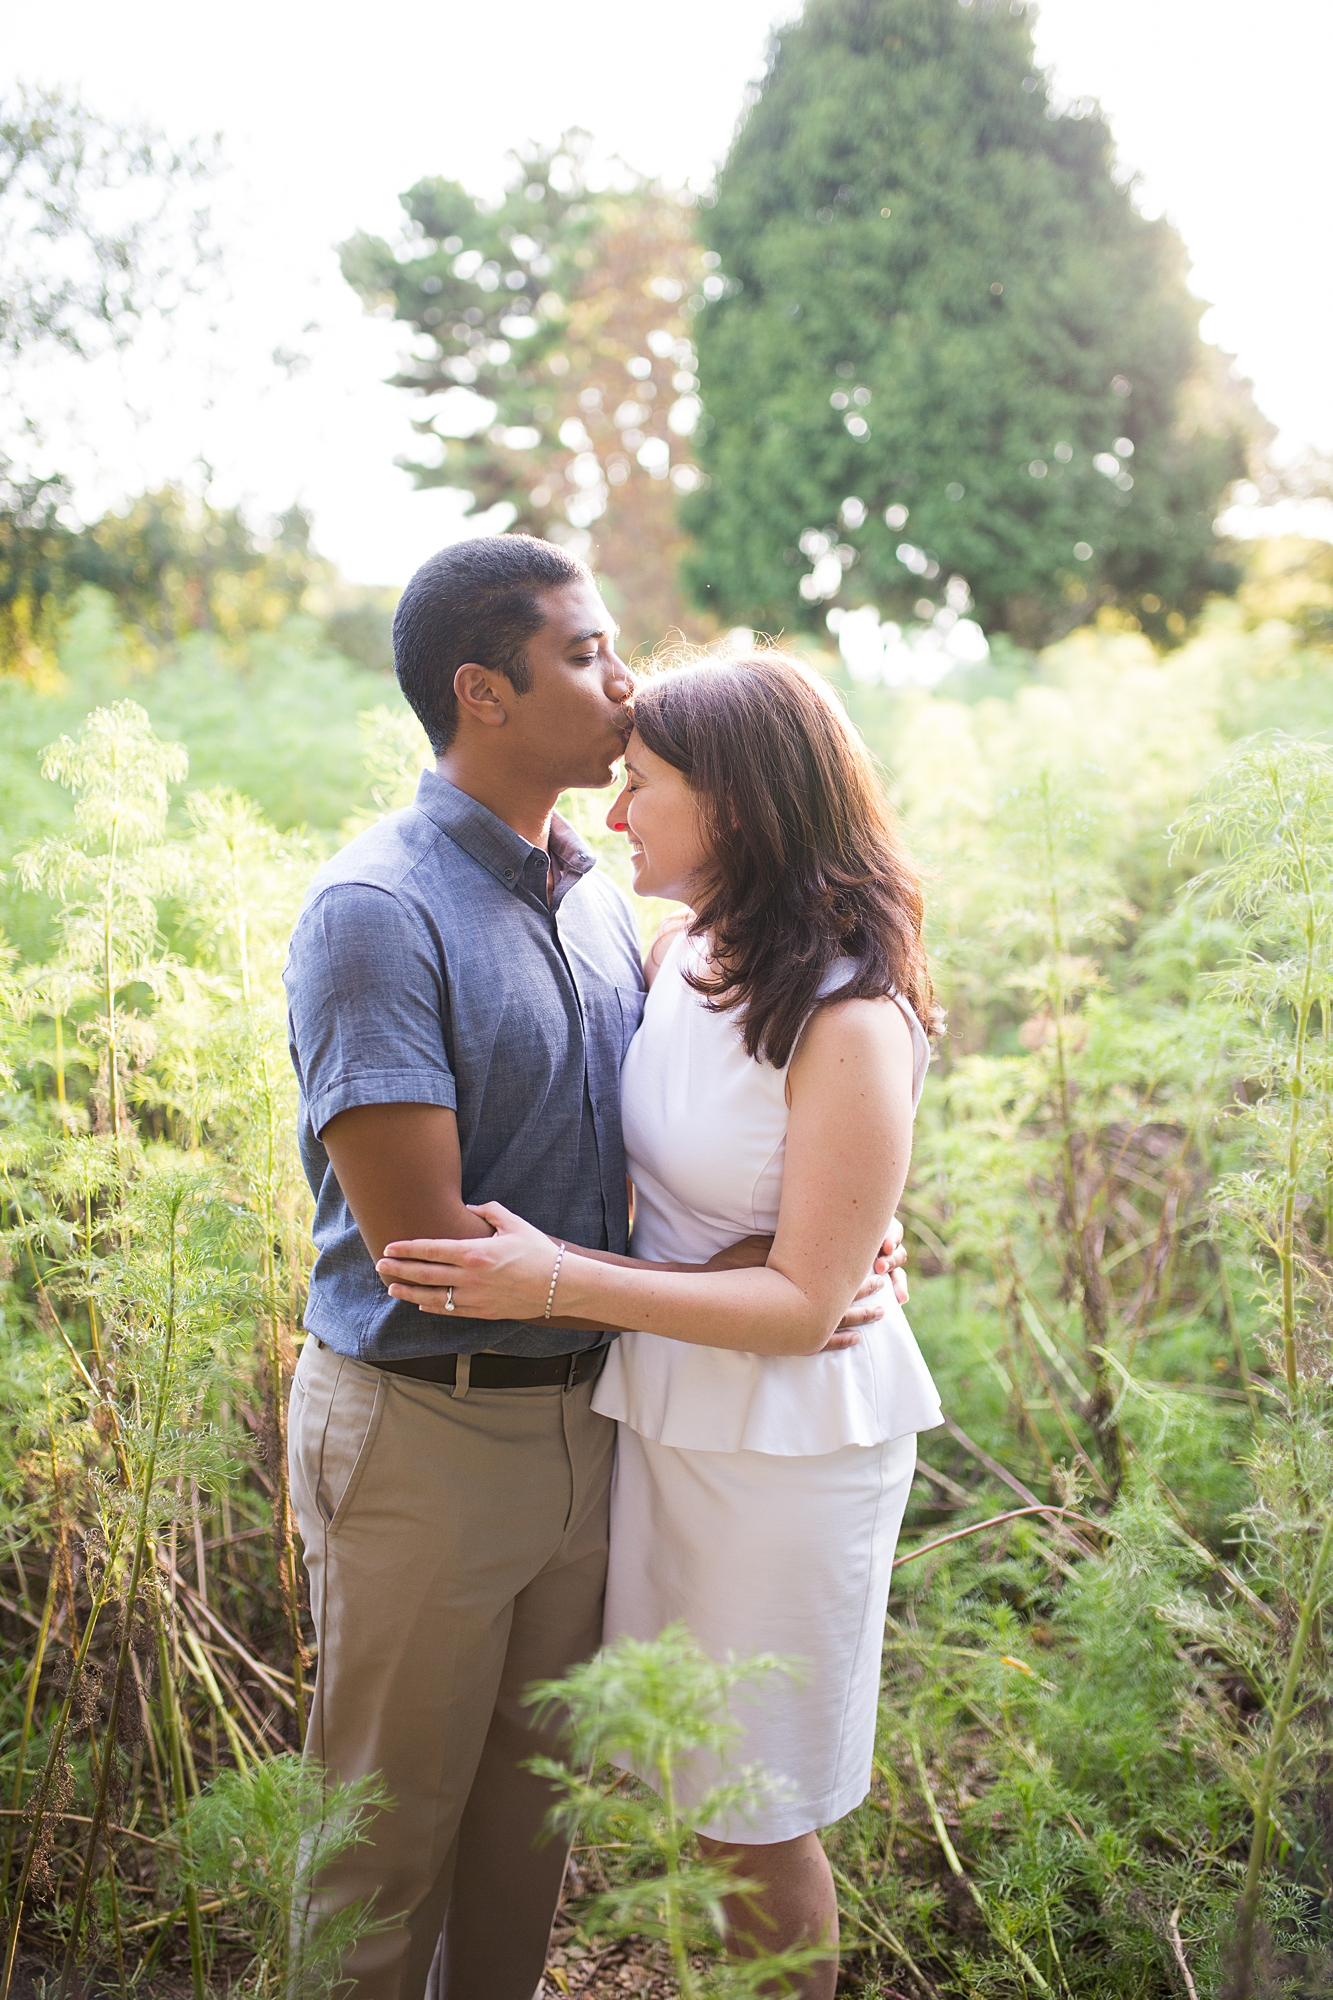 JC Raulston Arboretum Engagement Session